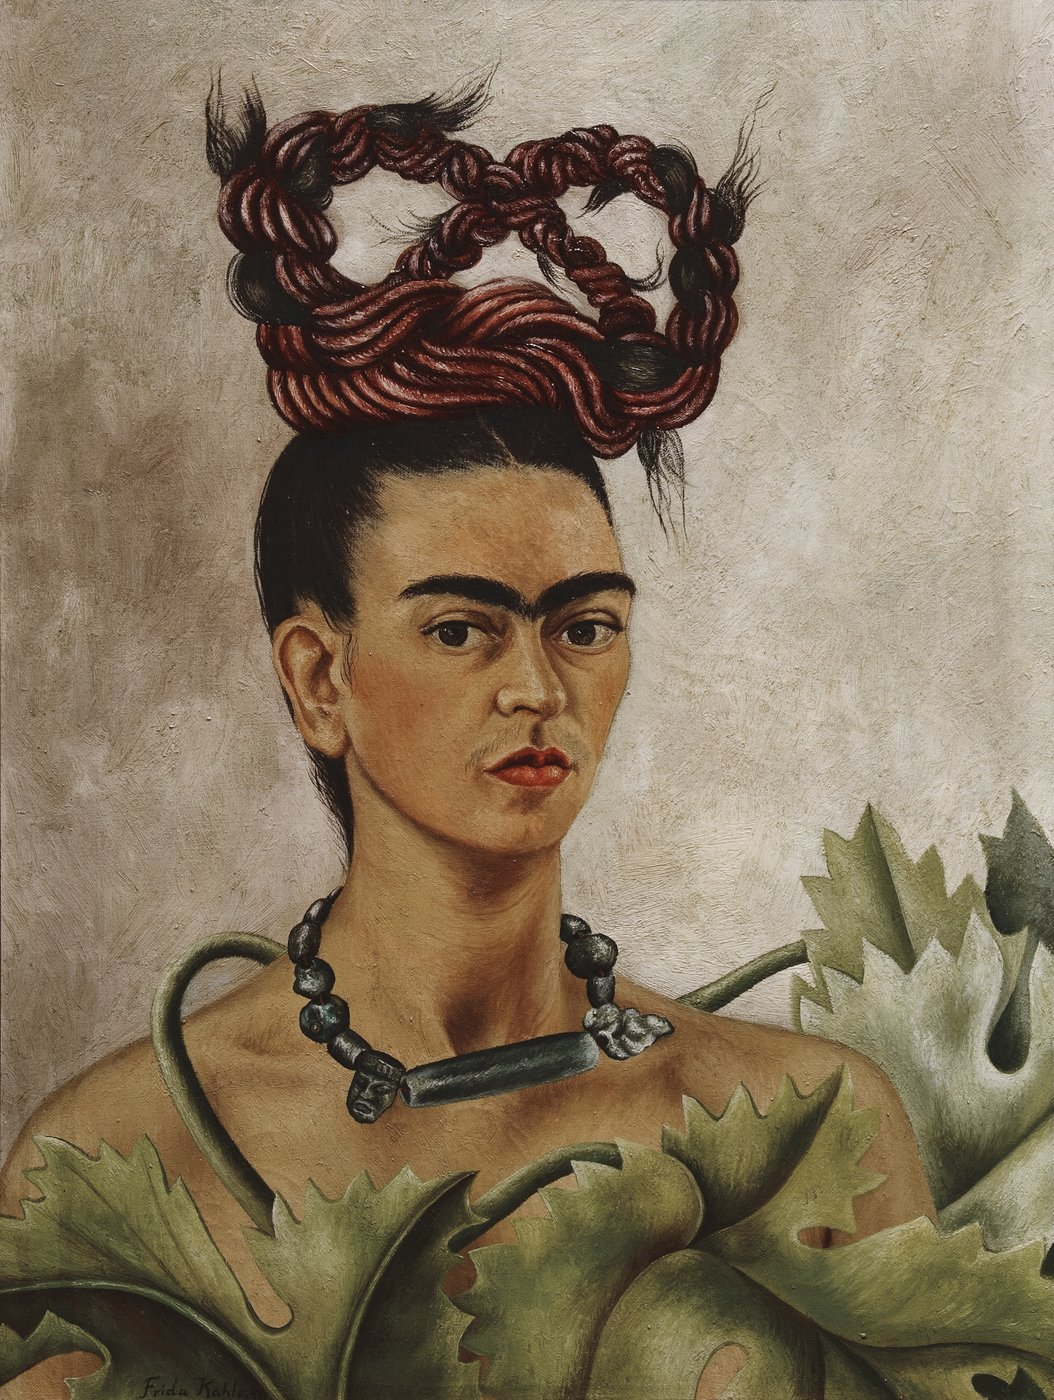 frida kahlo and diego rivera art gallery nsw. Black Bedroom Furniture Sets. Home Design Ideas